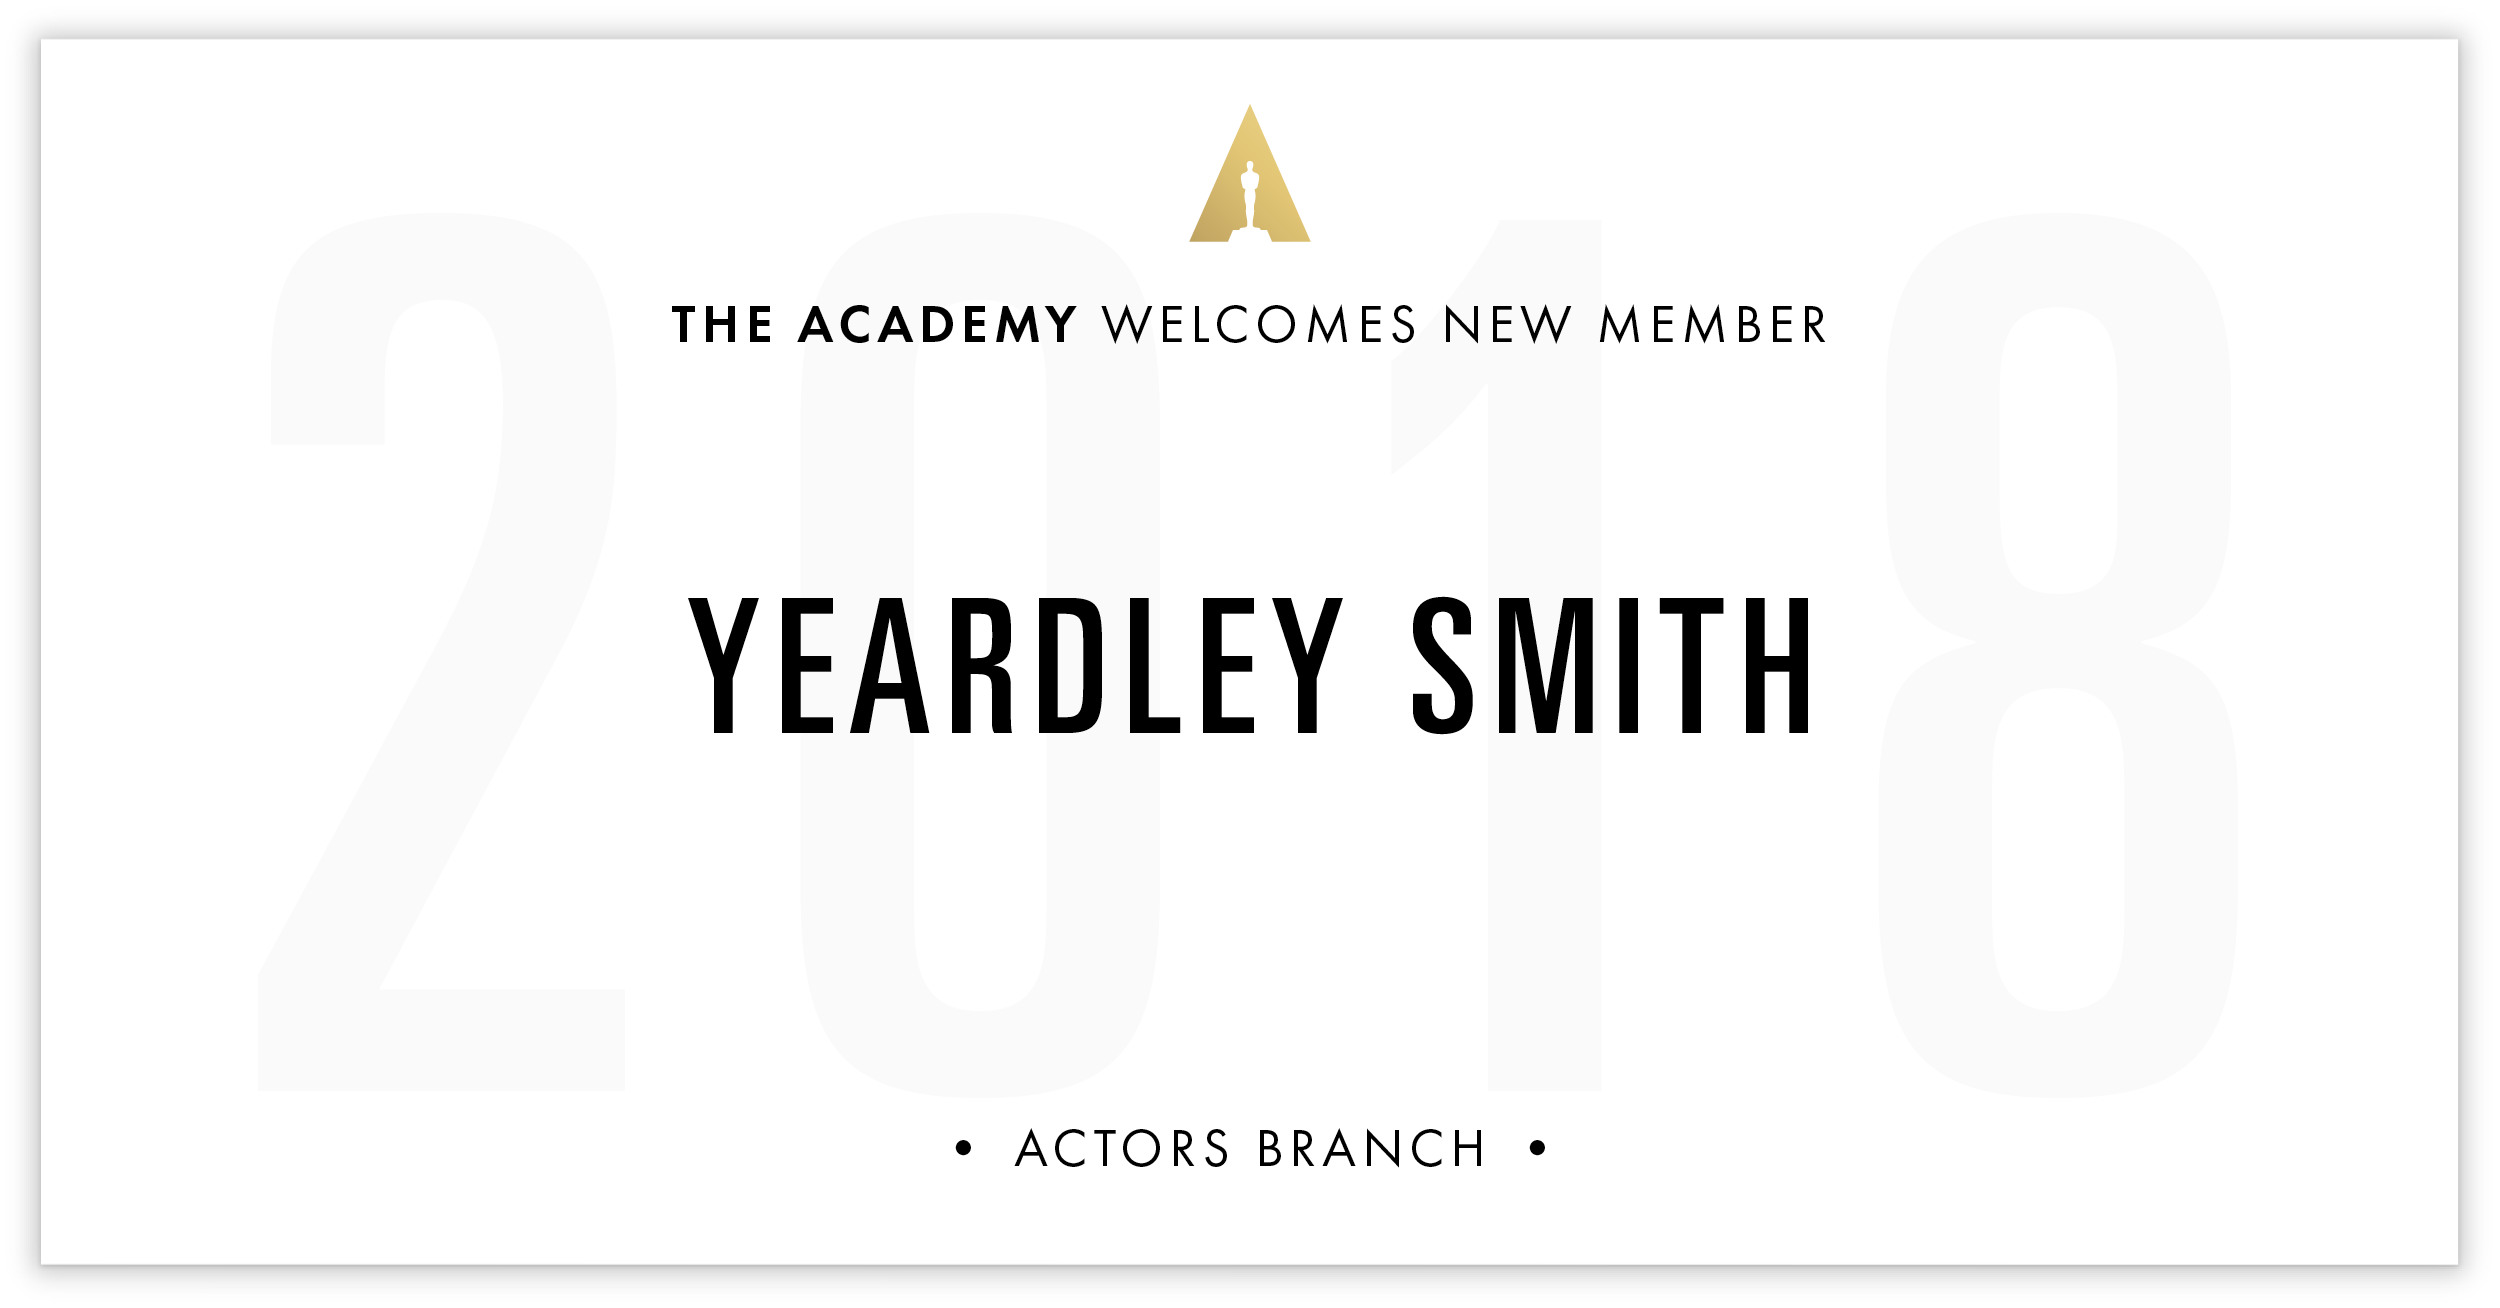 Yeardley Smith is invited!